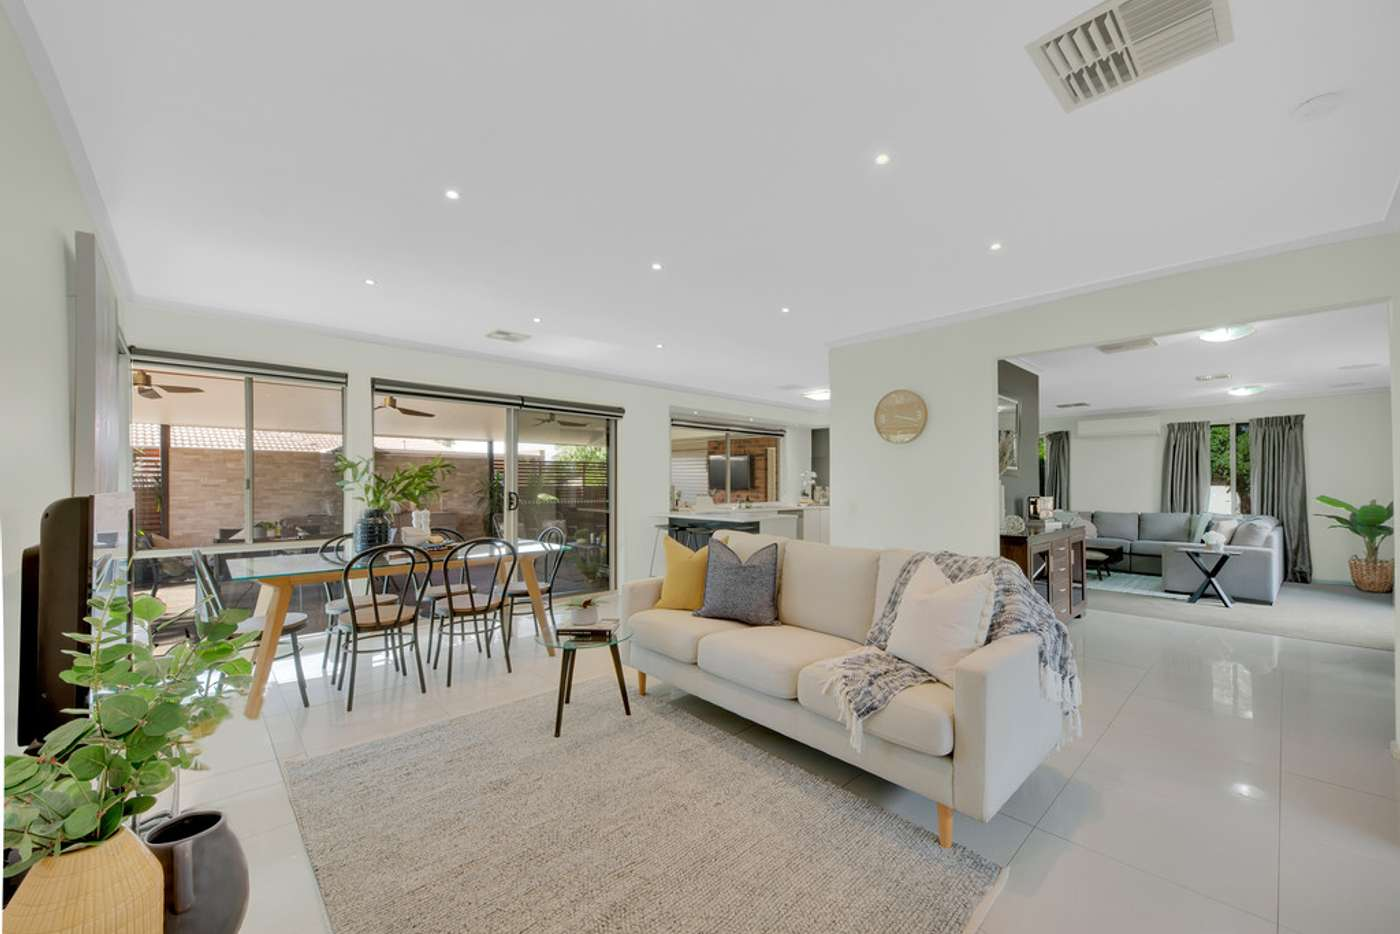 Fifth view of Homely house listing, 23 Kyle Court, Wodonga VIC 3690